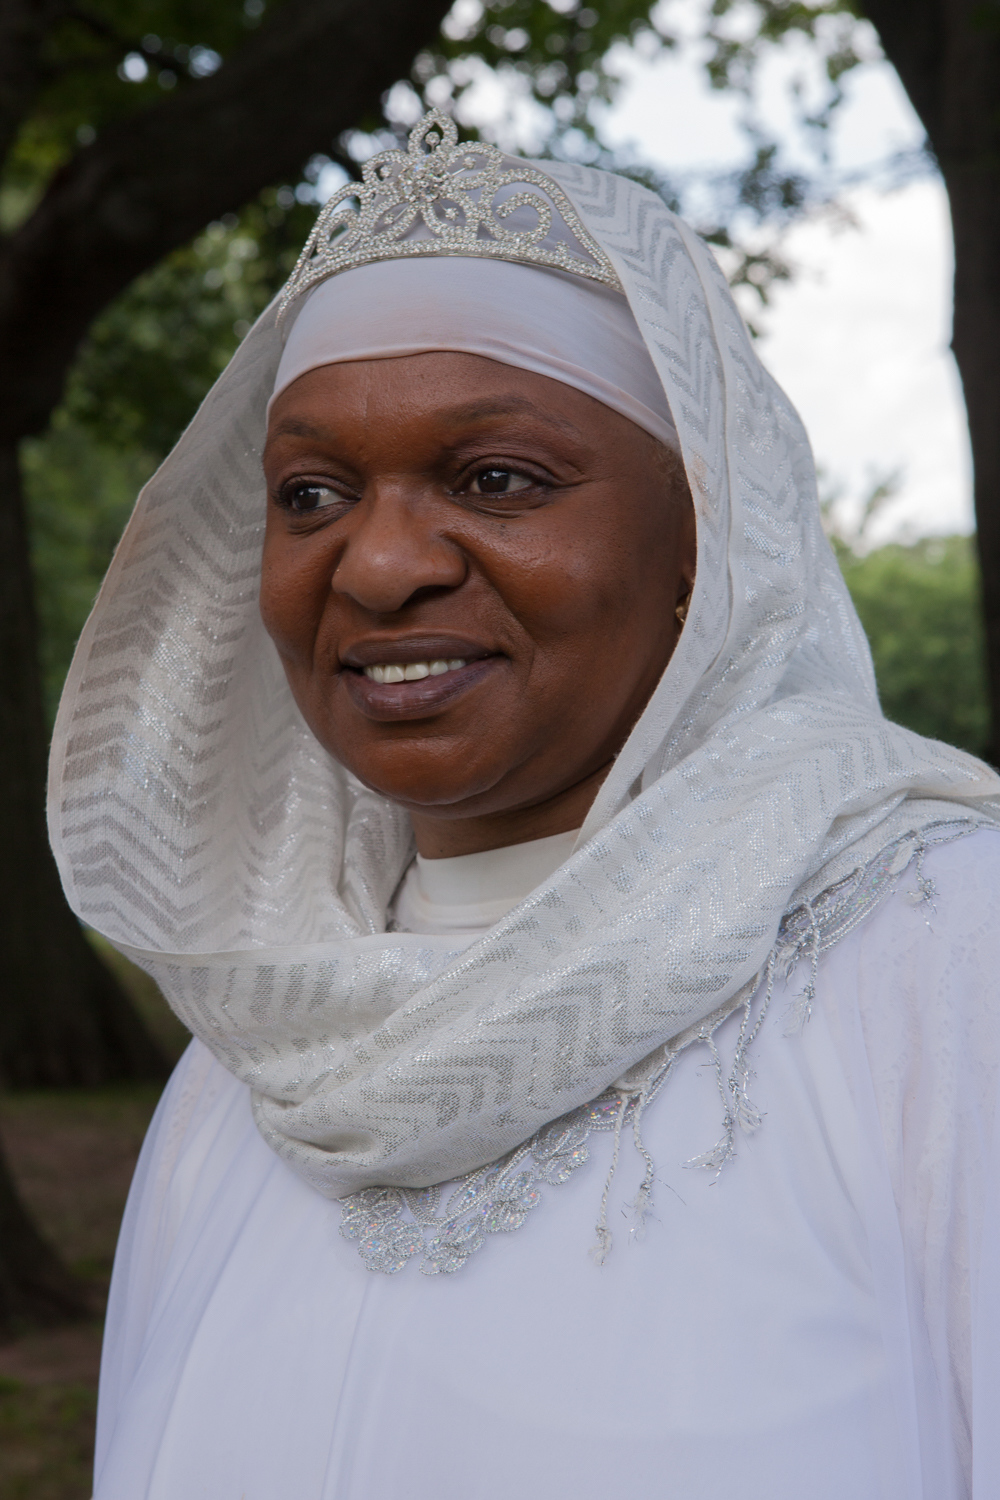 Zaimah Abdullah, politician and social worker, poses for a portrait while attending Eid al-Fitr celebrations in Newark, New Jersey on July 18, 2015.